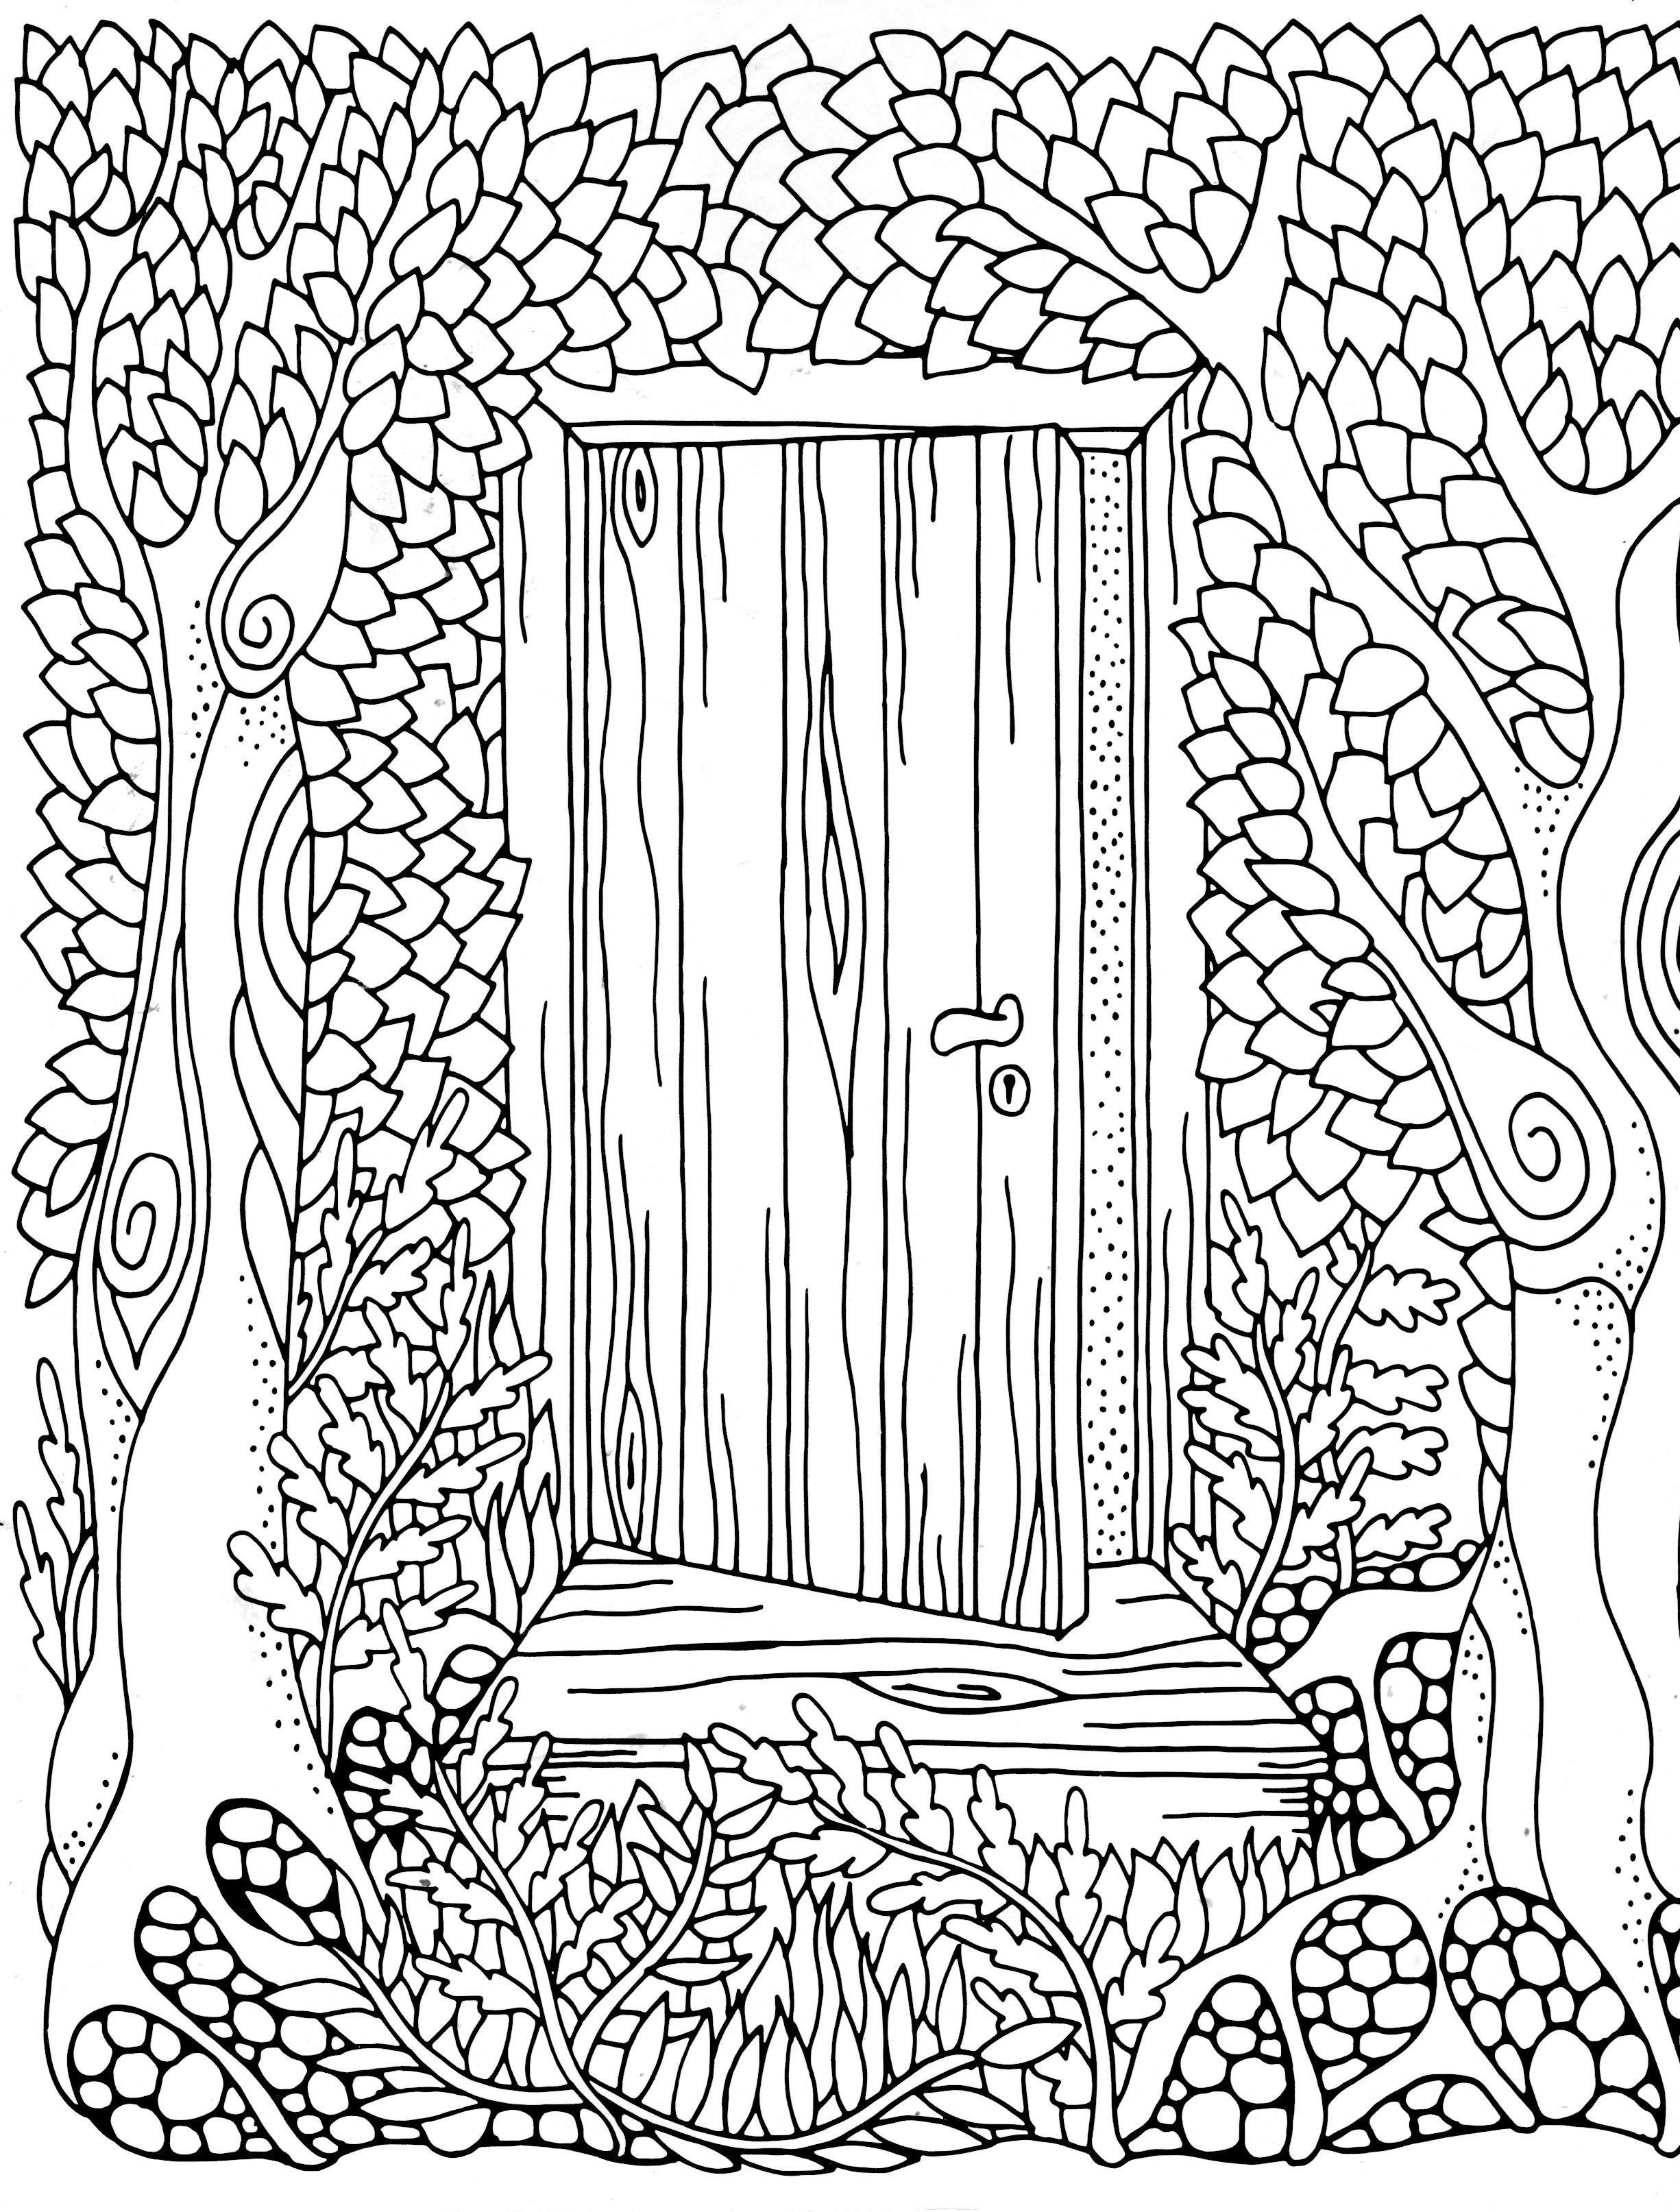 Pin By Rosalie Teaching Travel On Malbilder Ausmalbilder Coloring Books Black And White Abstract Coloring Pages